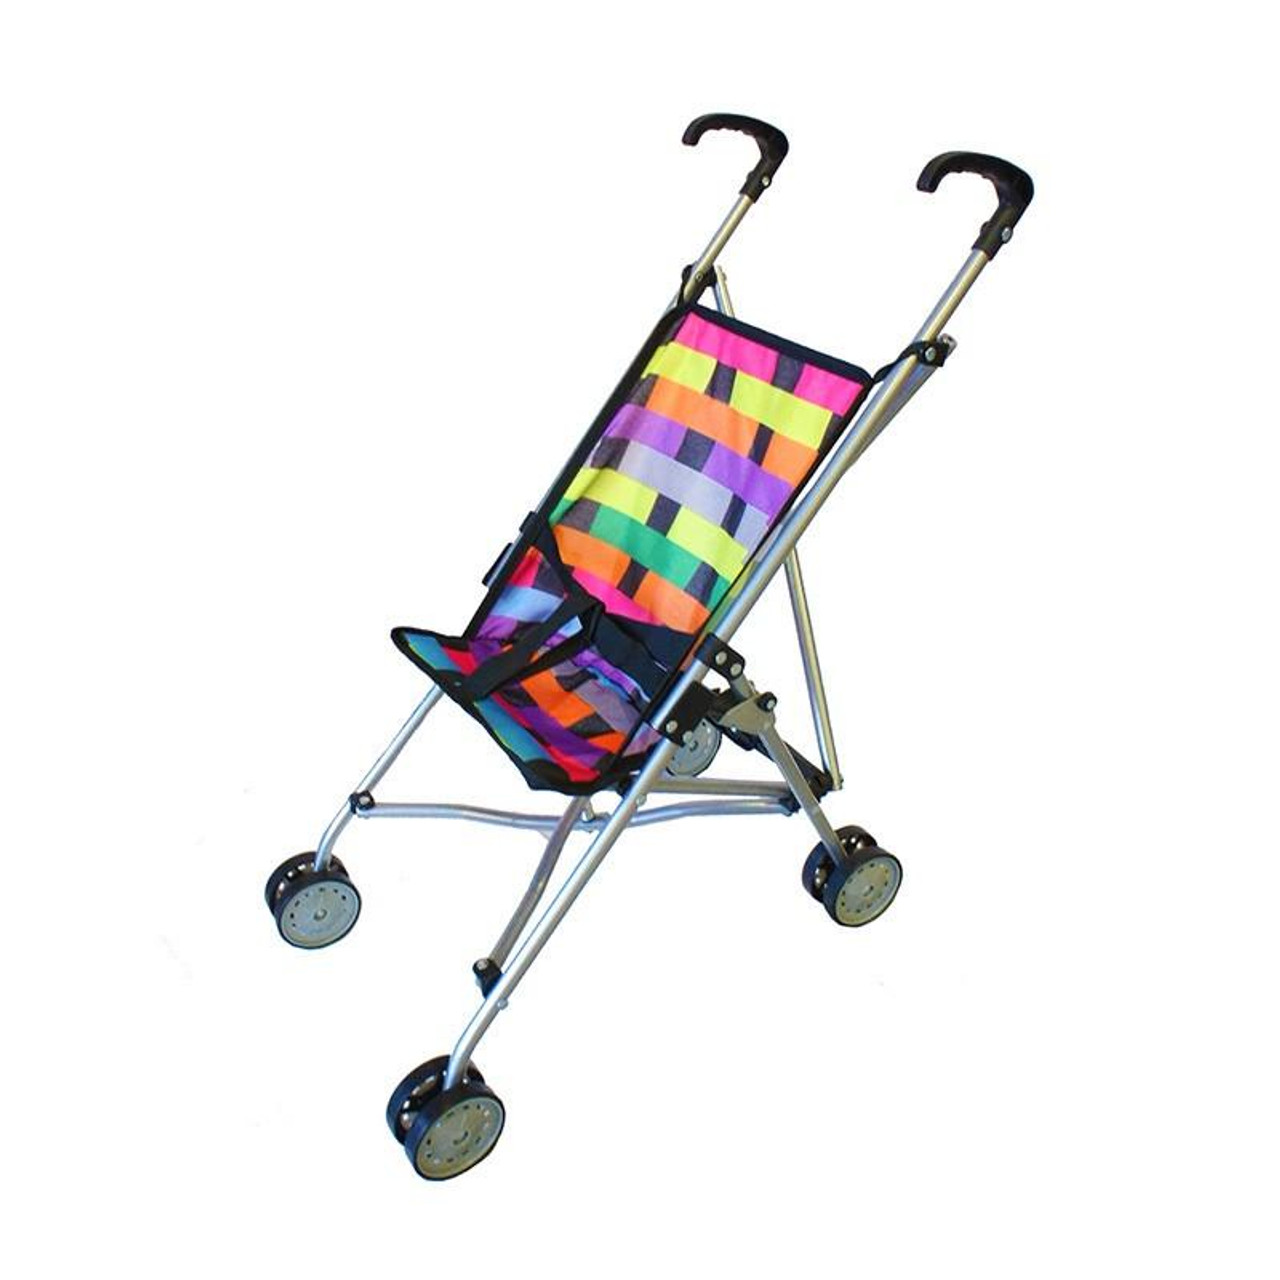 La Belle Lattice Doll Stroller at Baby Barn Discounts Stroll with your dolls in style with this light weight, portable and foldable stroller. Perfect for taking baby dolls on the go.